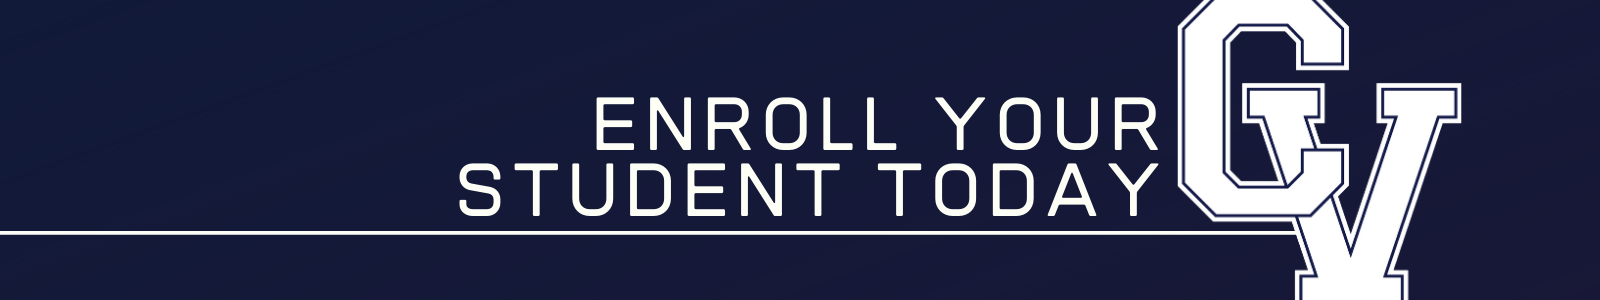 Enroll your student today